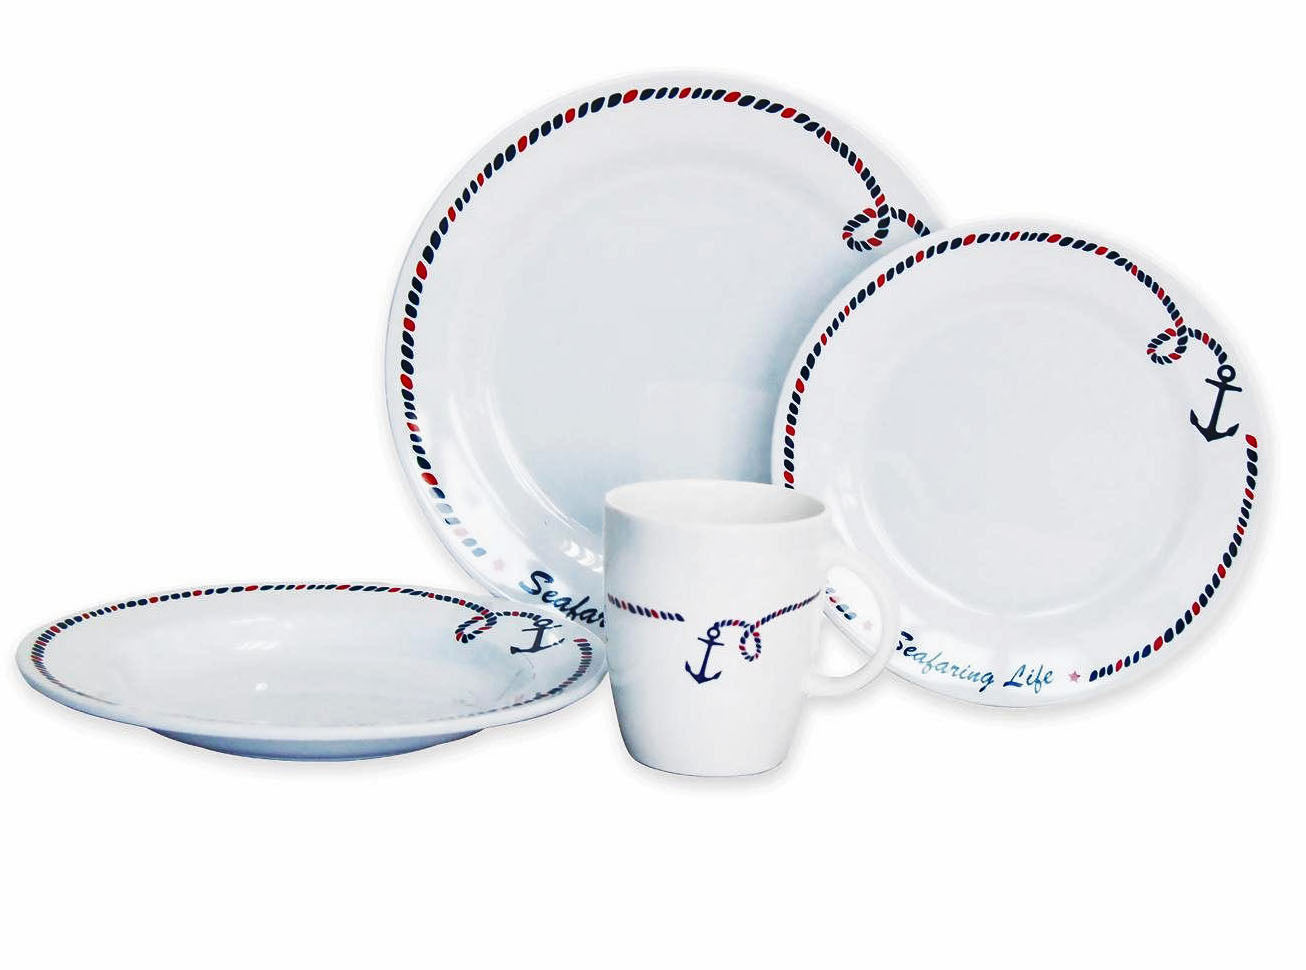 16 Piece Non-Skid Melamine Galleyware - Anchor Collection